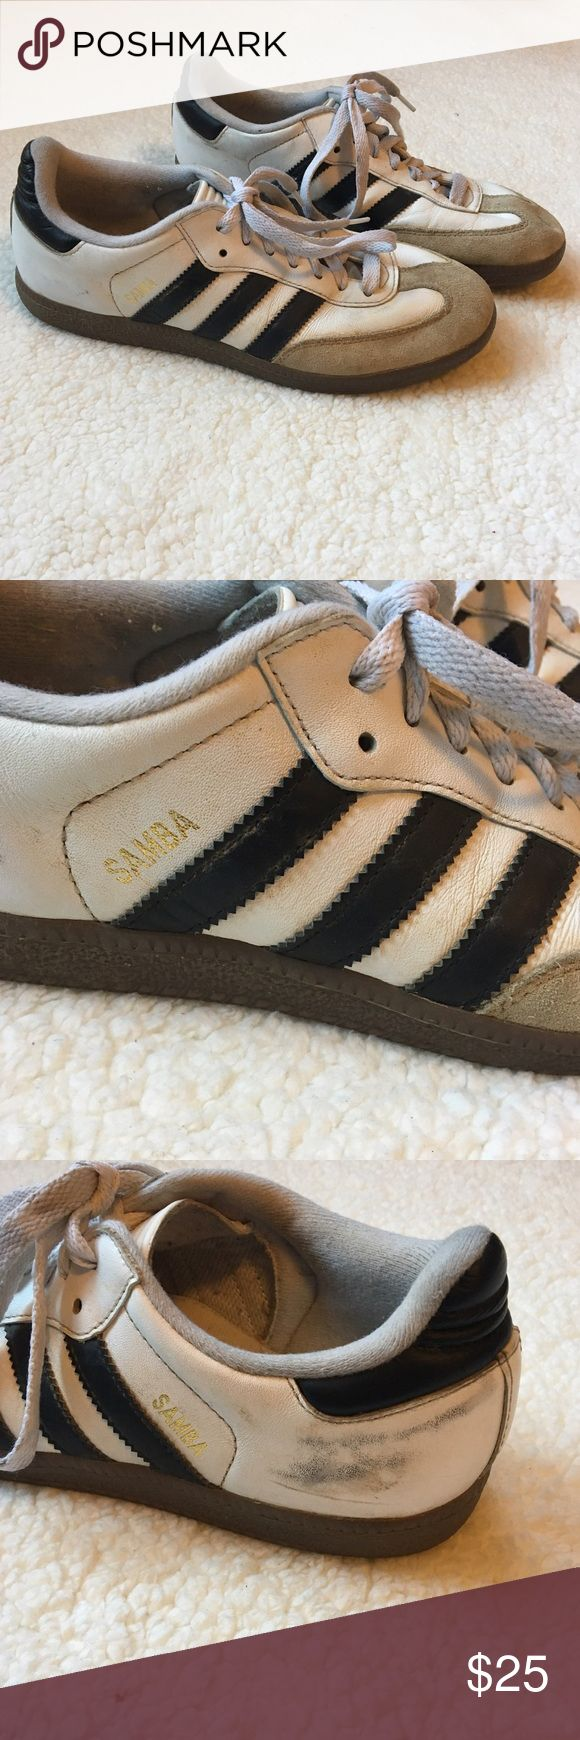 White and Black Adidas Sambas Suede front. Good preowned condition (the insoles look like new). A couple scuffs, the most noticeable is pictured. Size 6.5 Men's. Adidas Shoes Sneakers